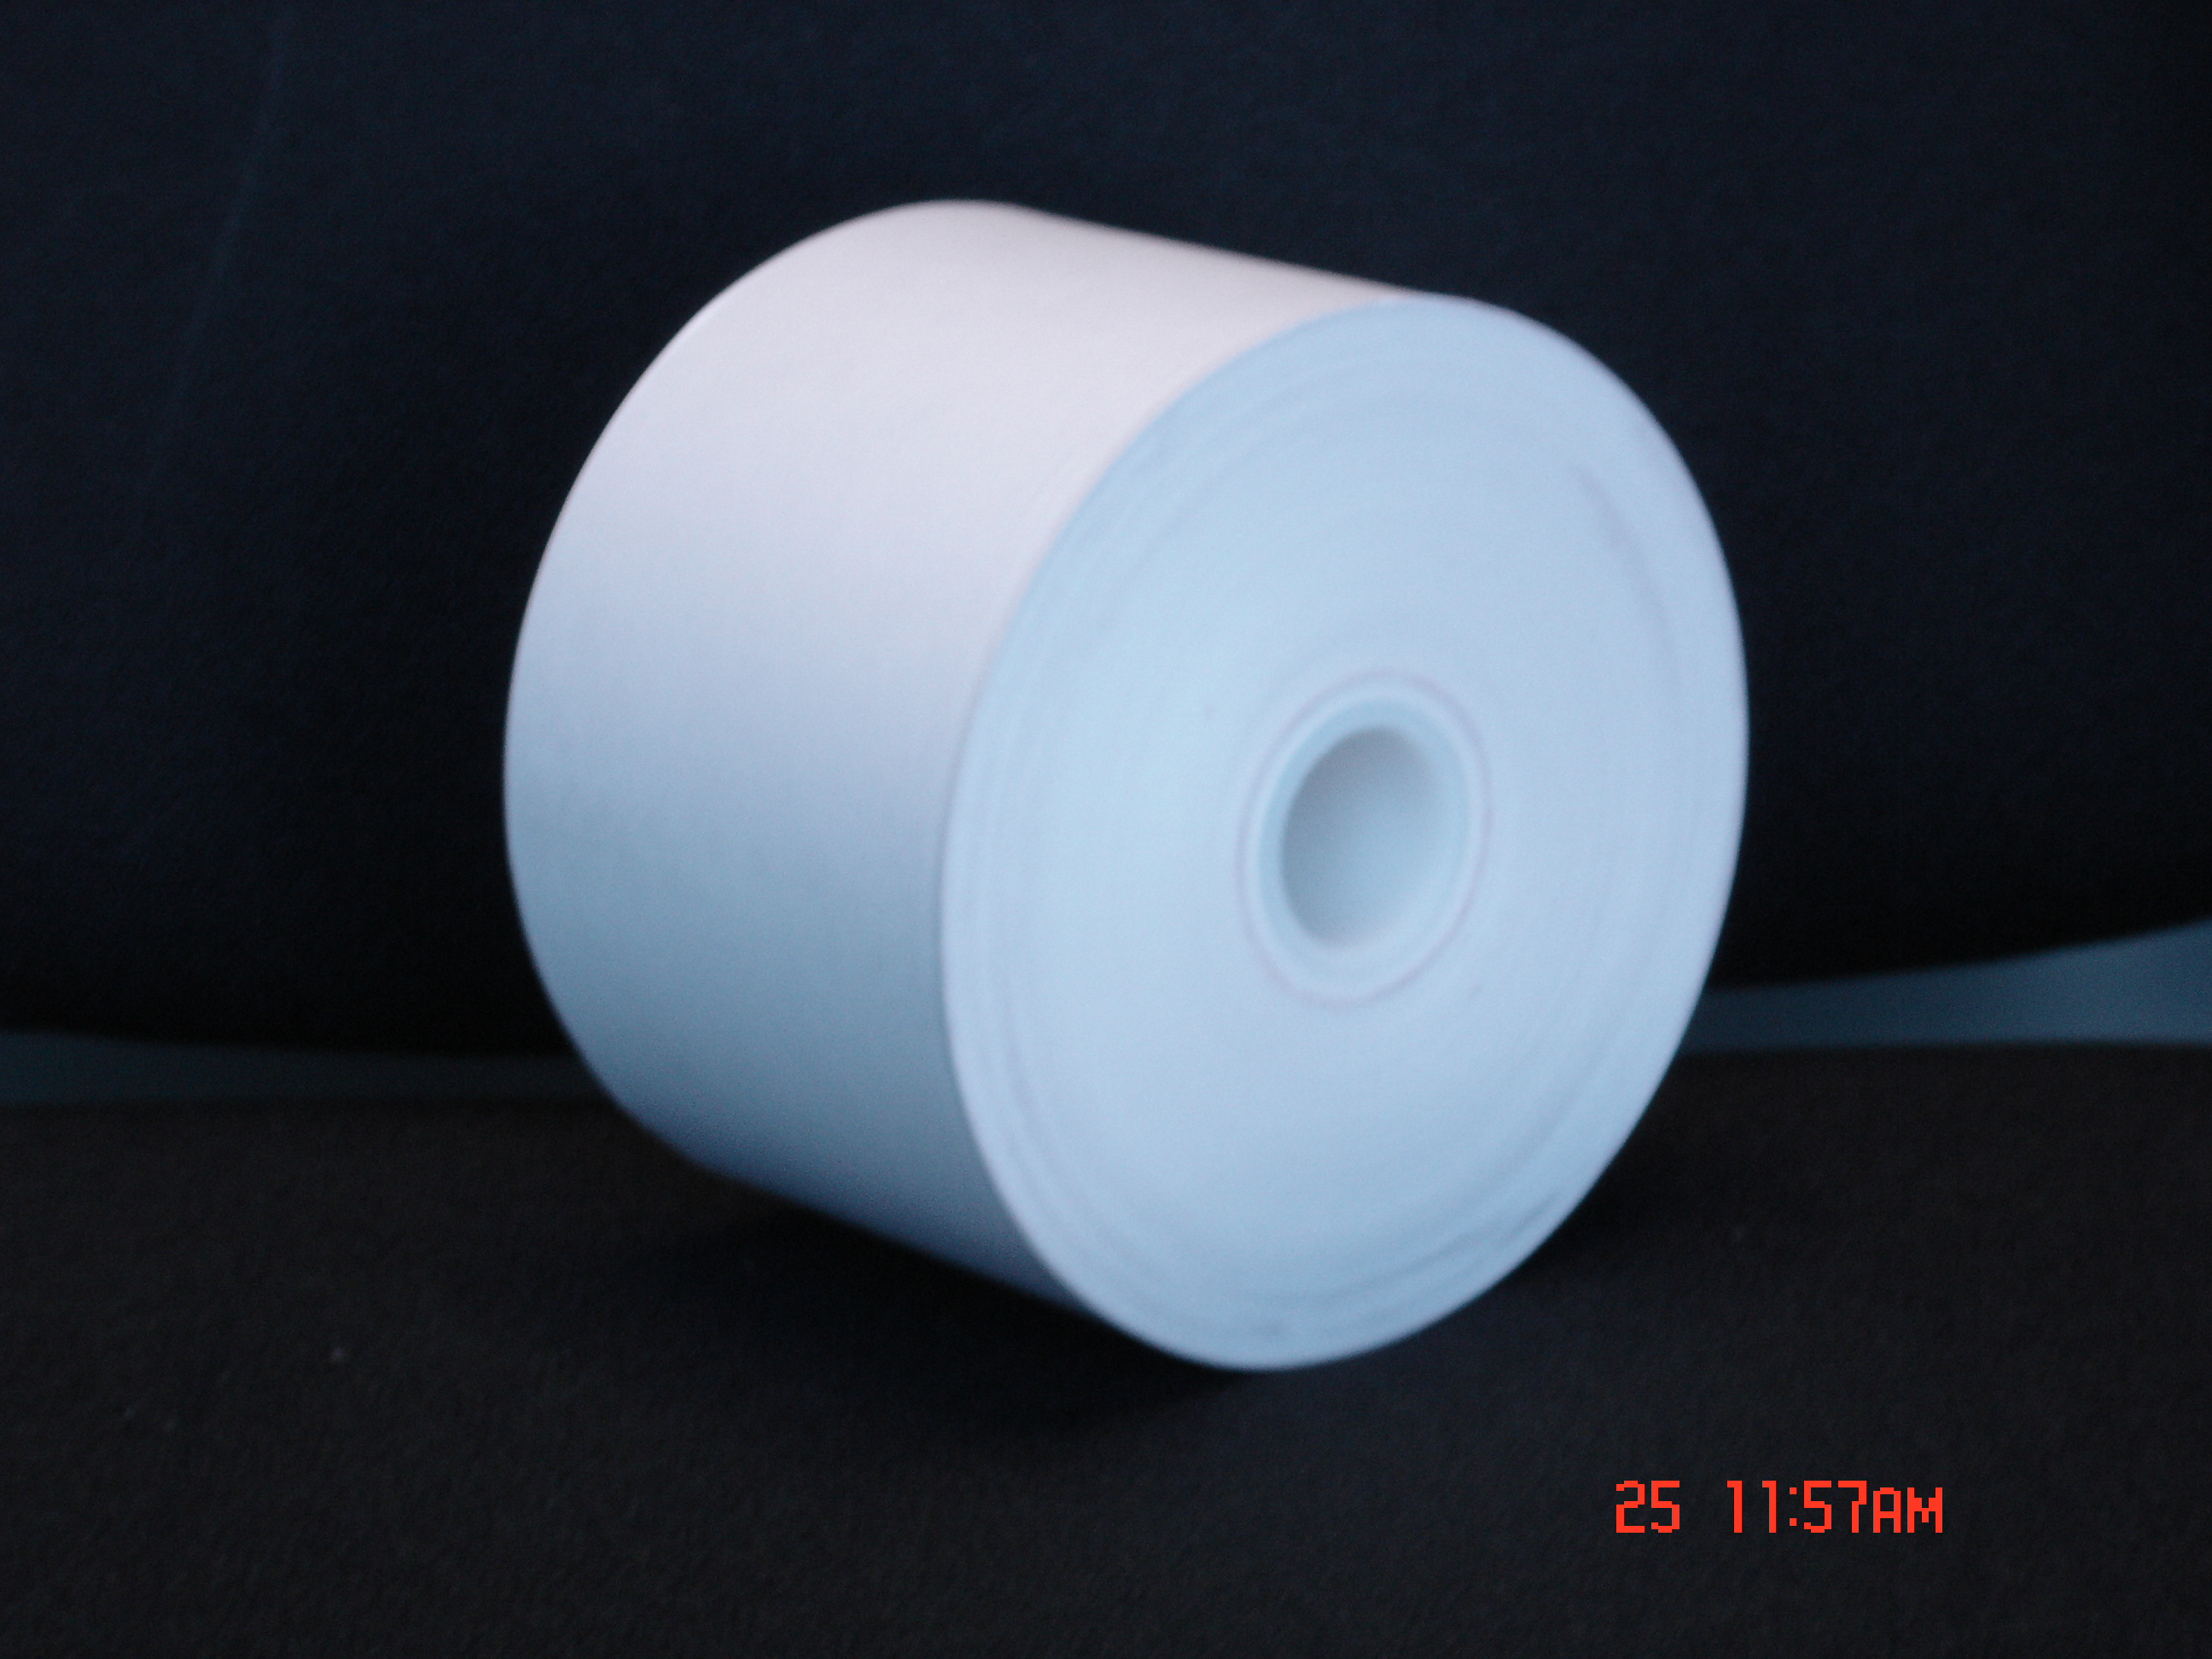 thermal paper technology Thermal paper rolls  4 roll - 2x1 direct thermal label paper roll specification media size: 2 width x 1 length  blue edge technology .